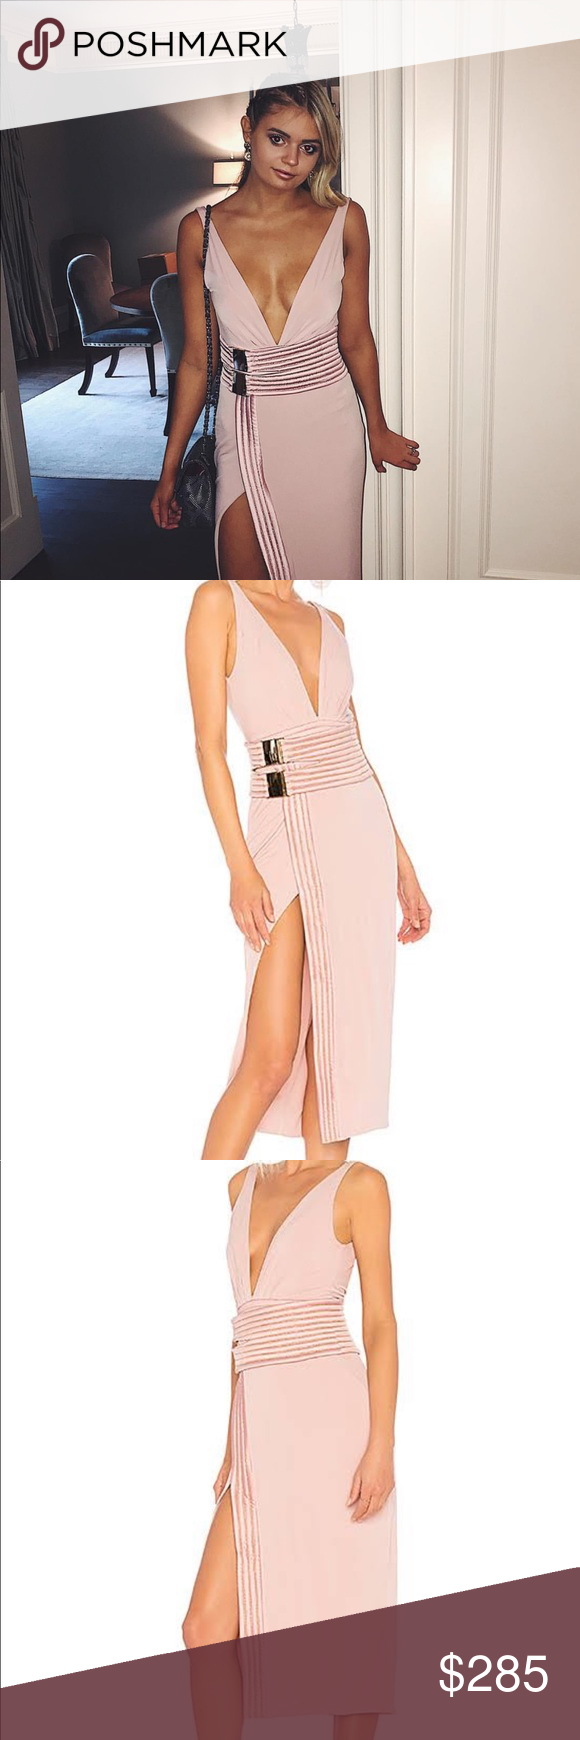 fe6a21827e38 ZHIVAGO LE LOFT DRESS IN BLUSH Worn once — perfect condition Purchased on  revolve a little over 6 months ago Fits true to size Zhivago Dresses Midi